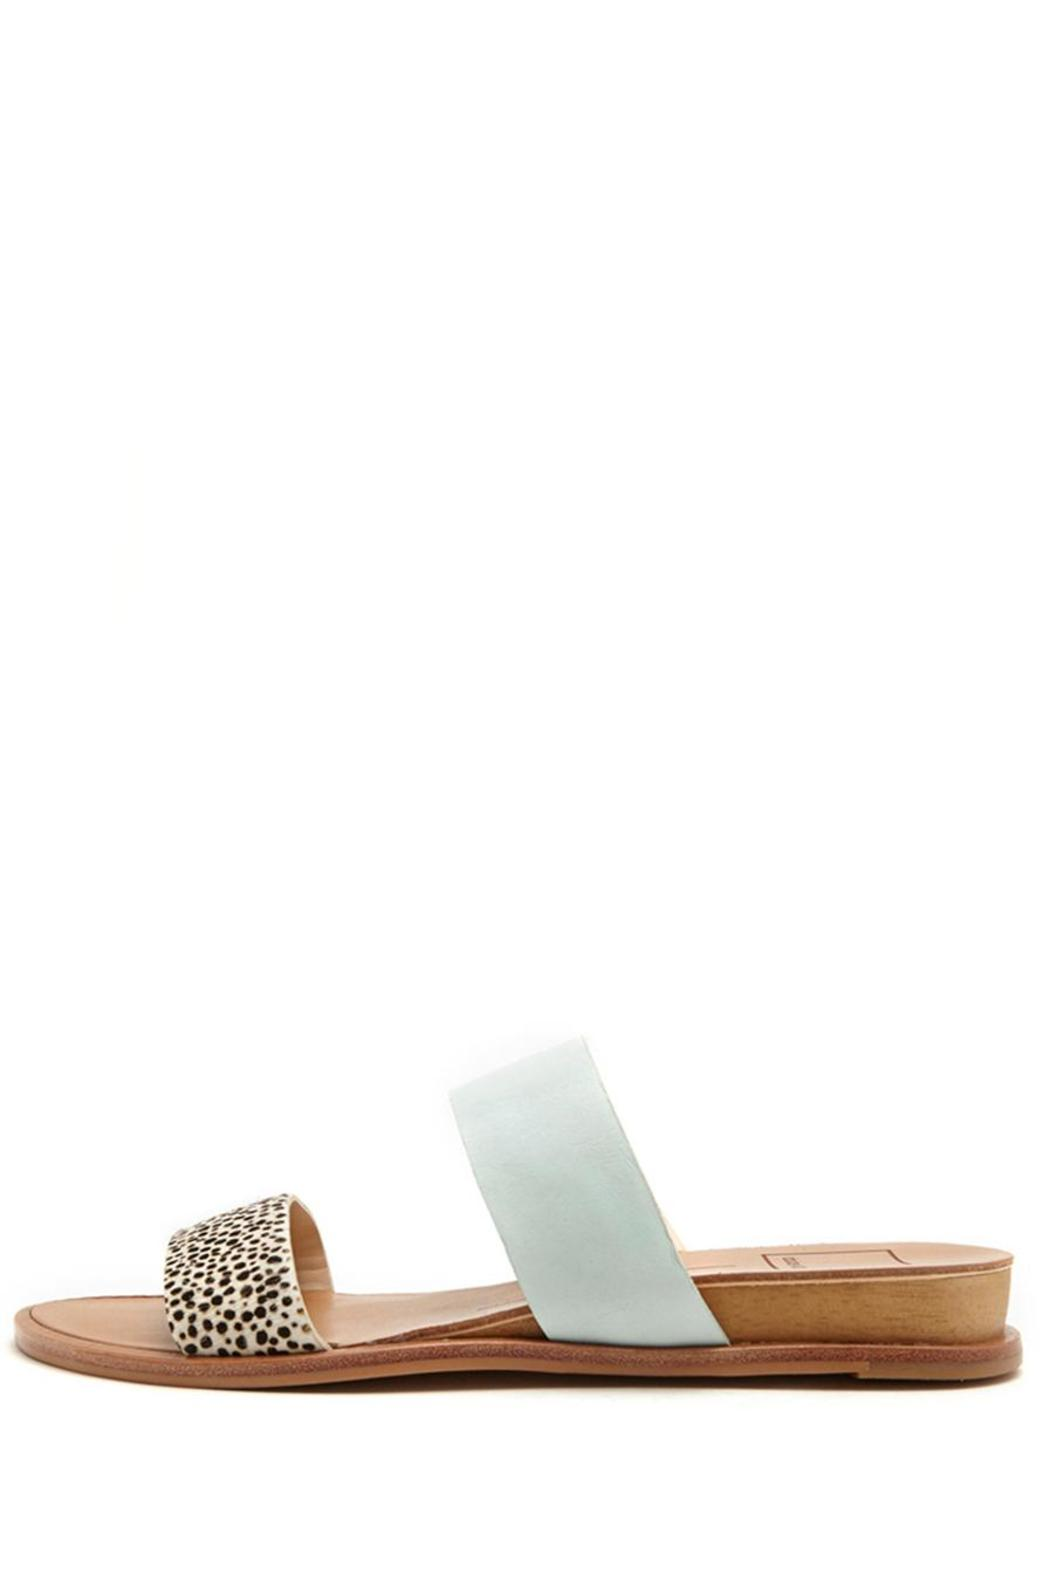 7590ffaa27c Dolce Vita Sliver Wedge Sandal from Atlanta by Sole shoes ...